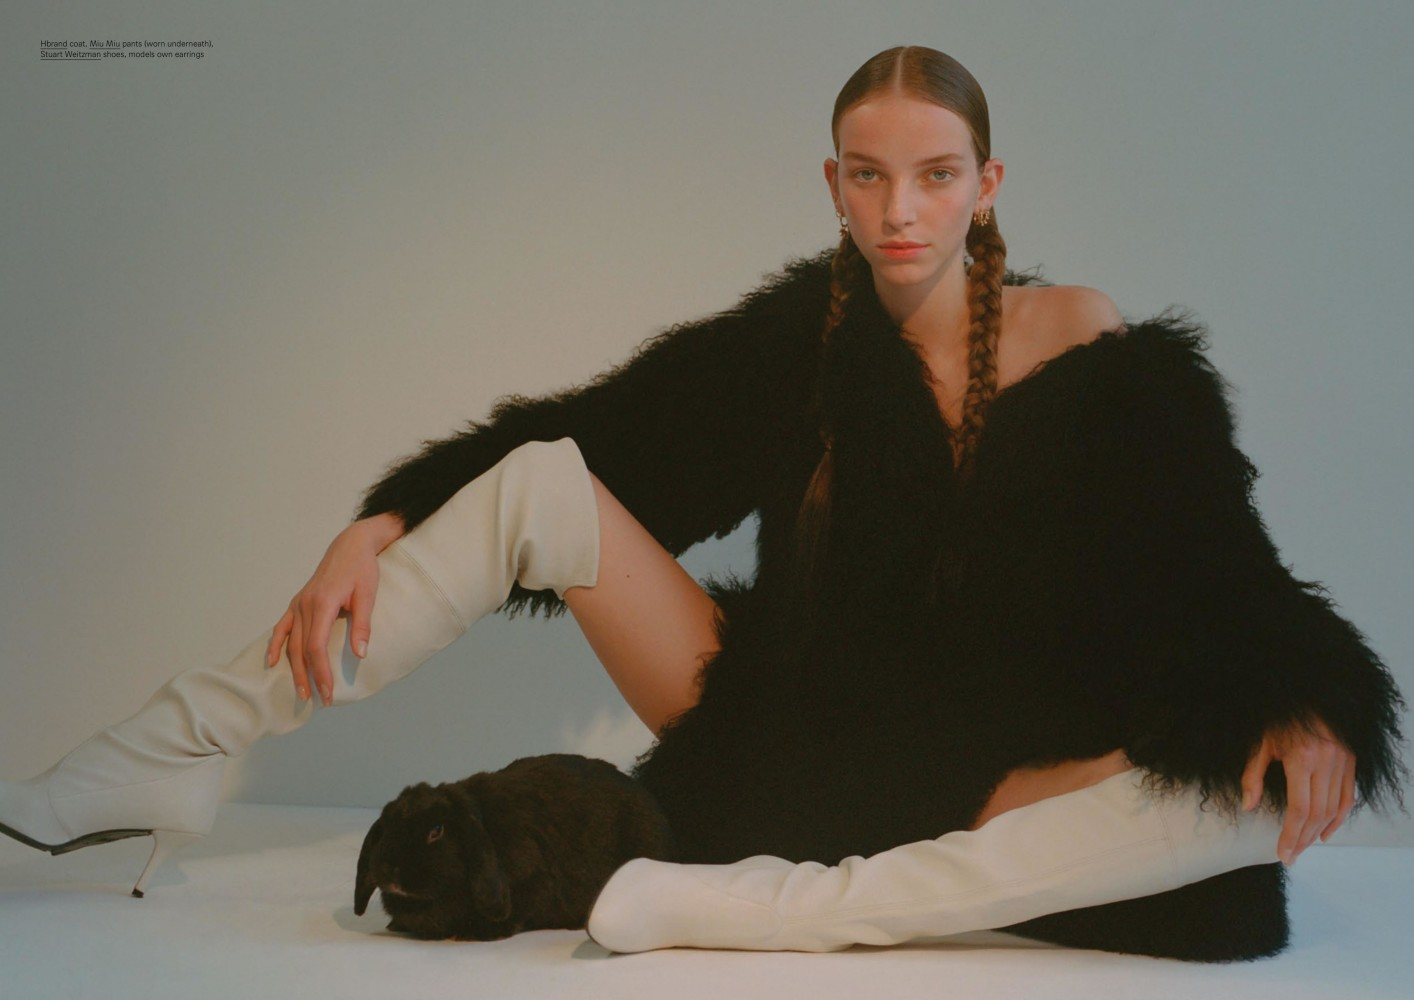 JAMILLA HOOGENBOOM FOR OYSTER MAGAZINE